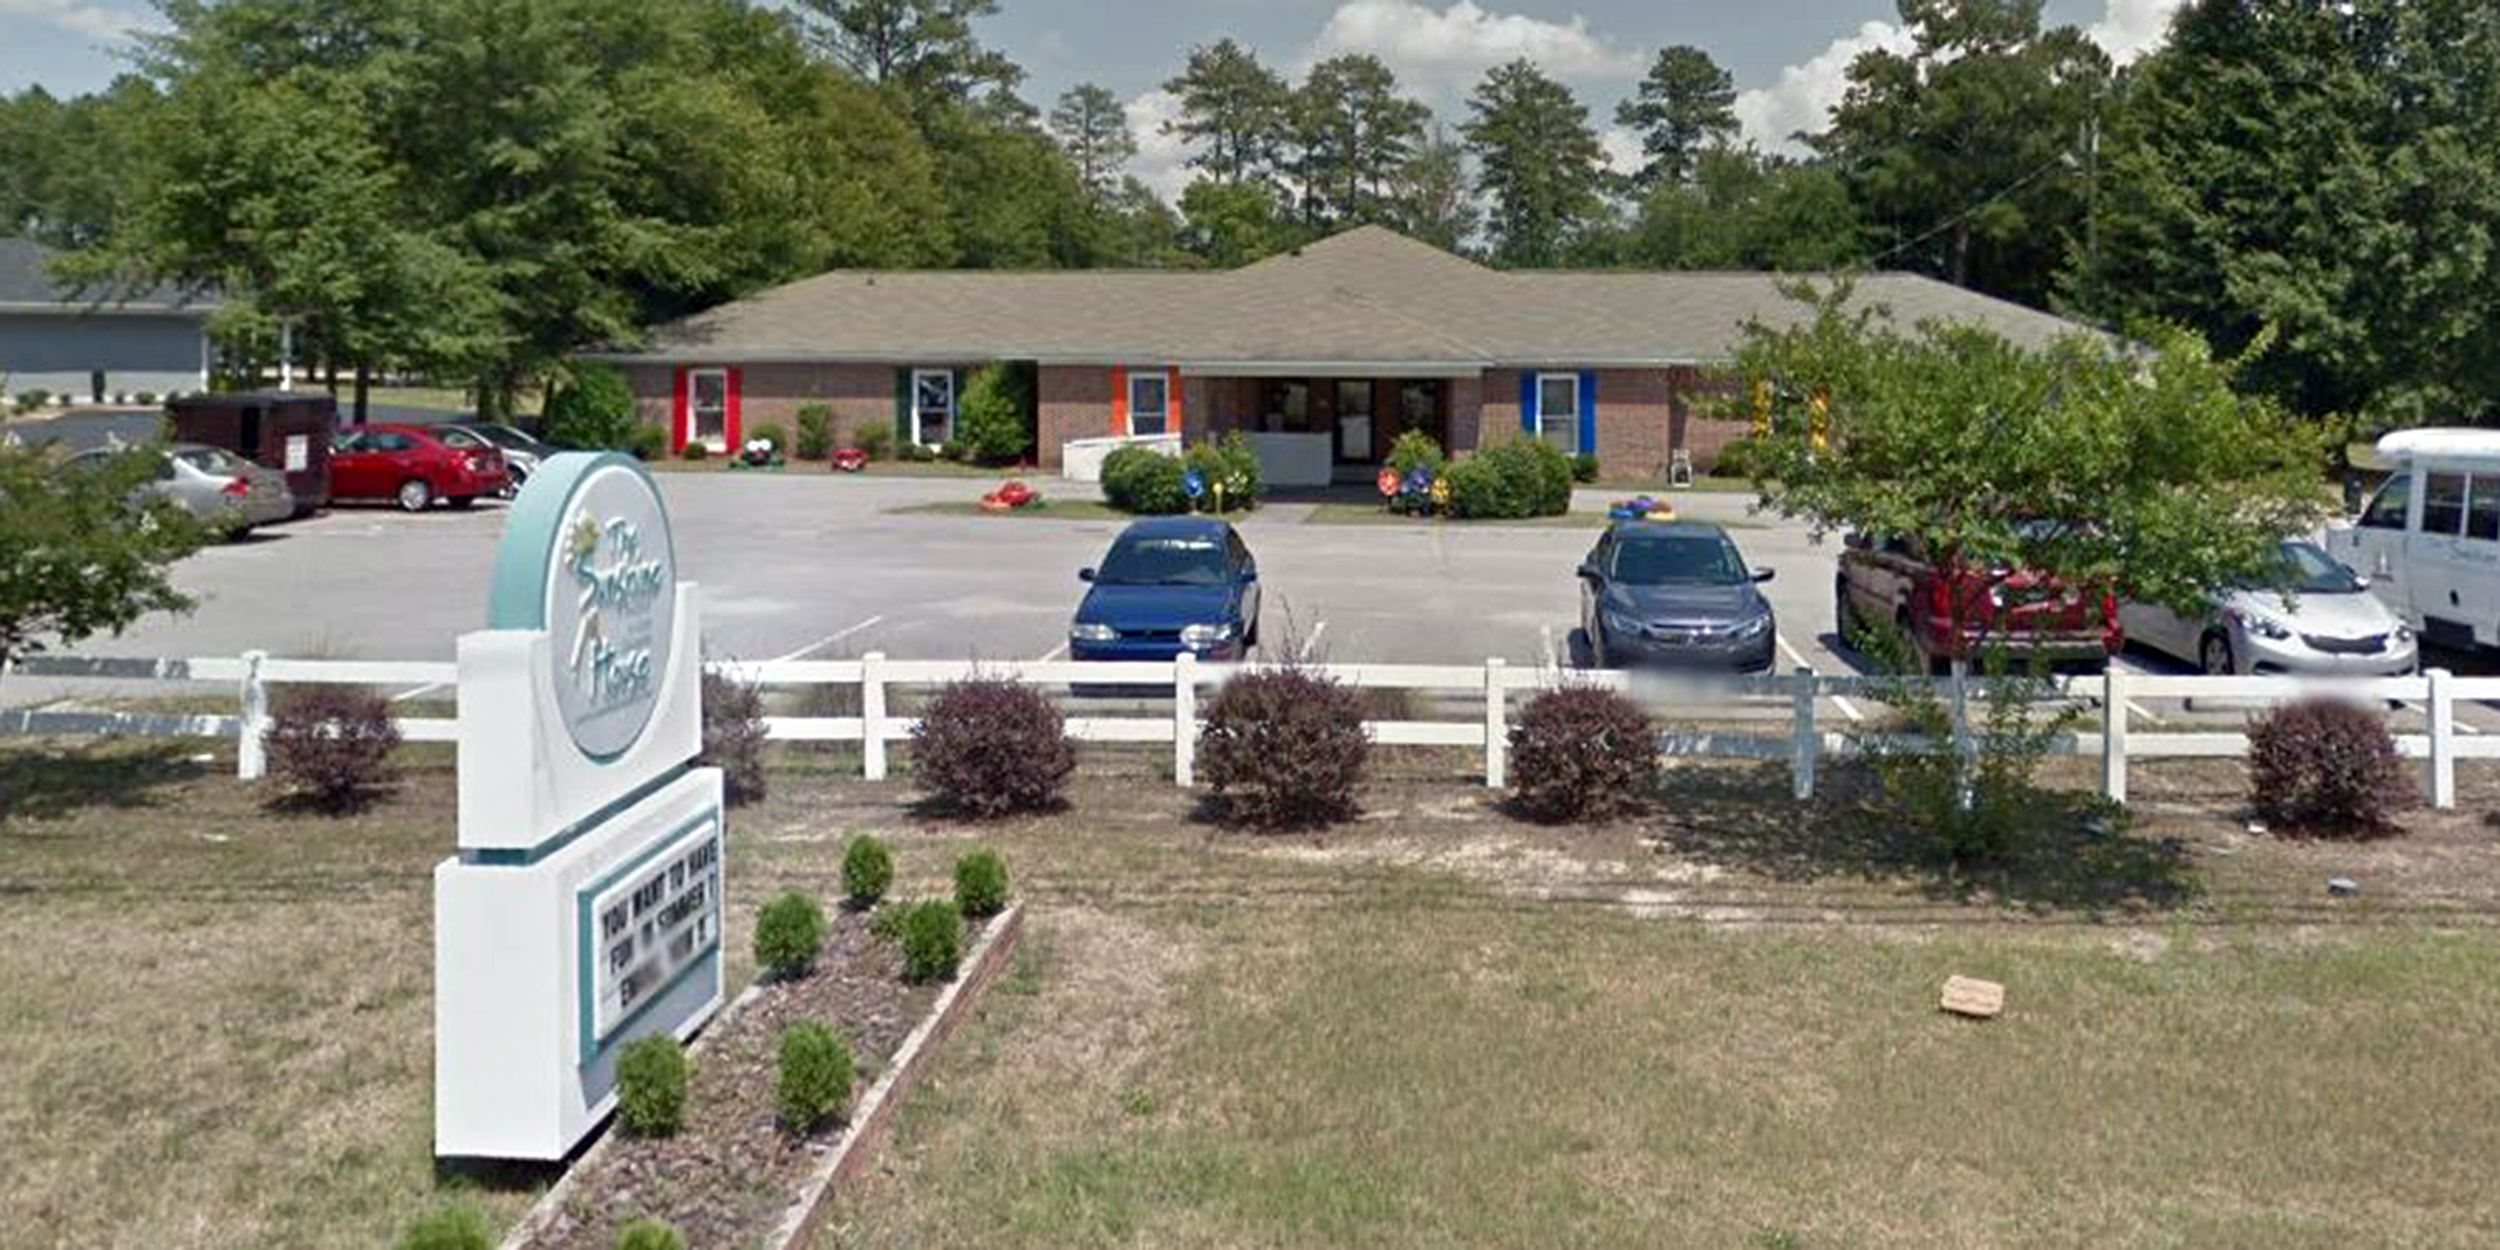 Two infants found dead in car outside South Carolina day care, officials say